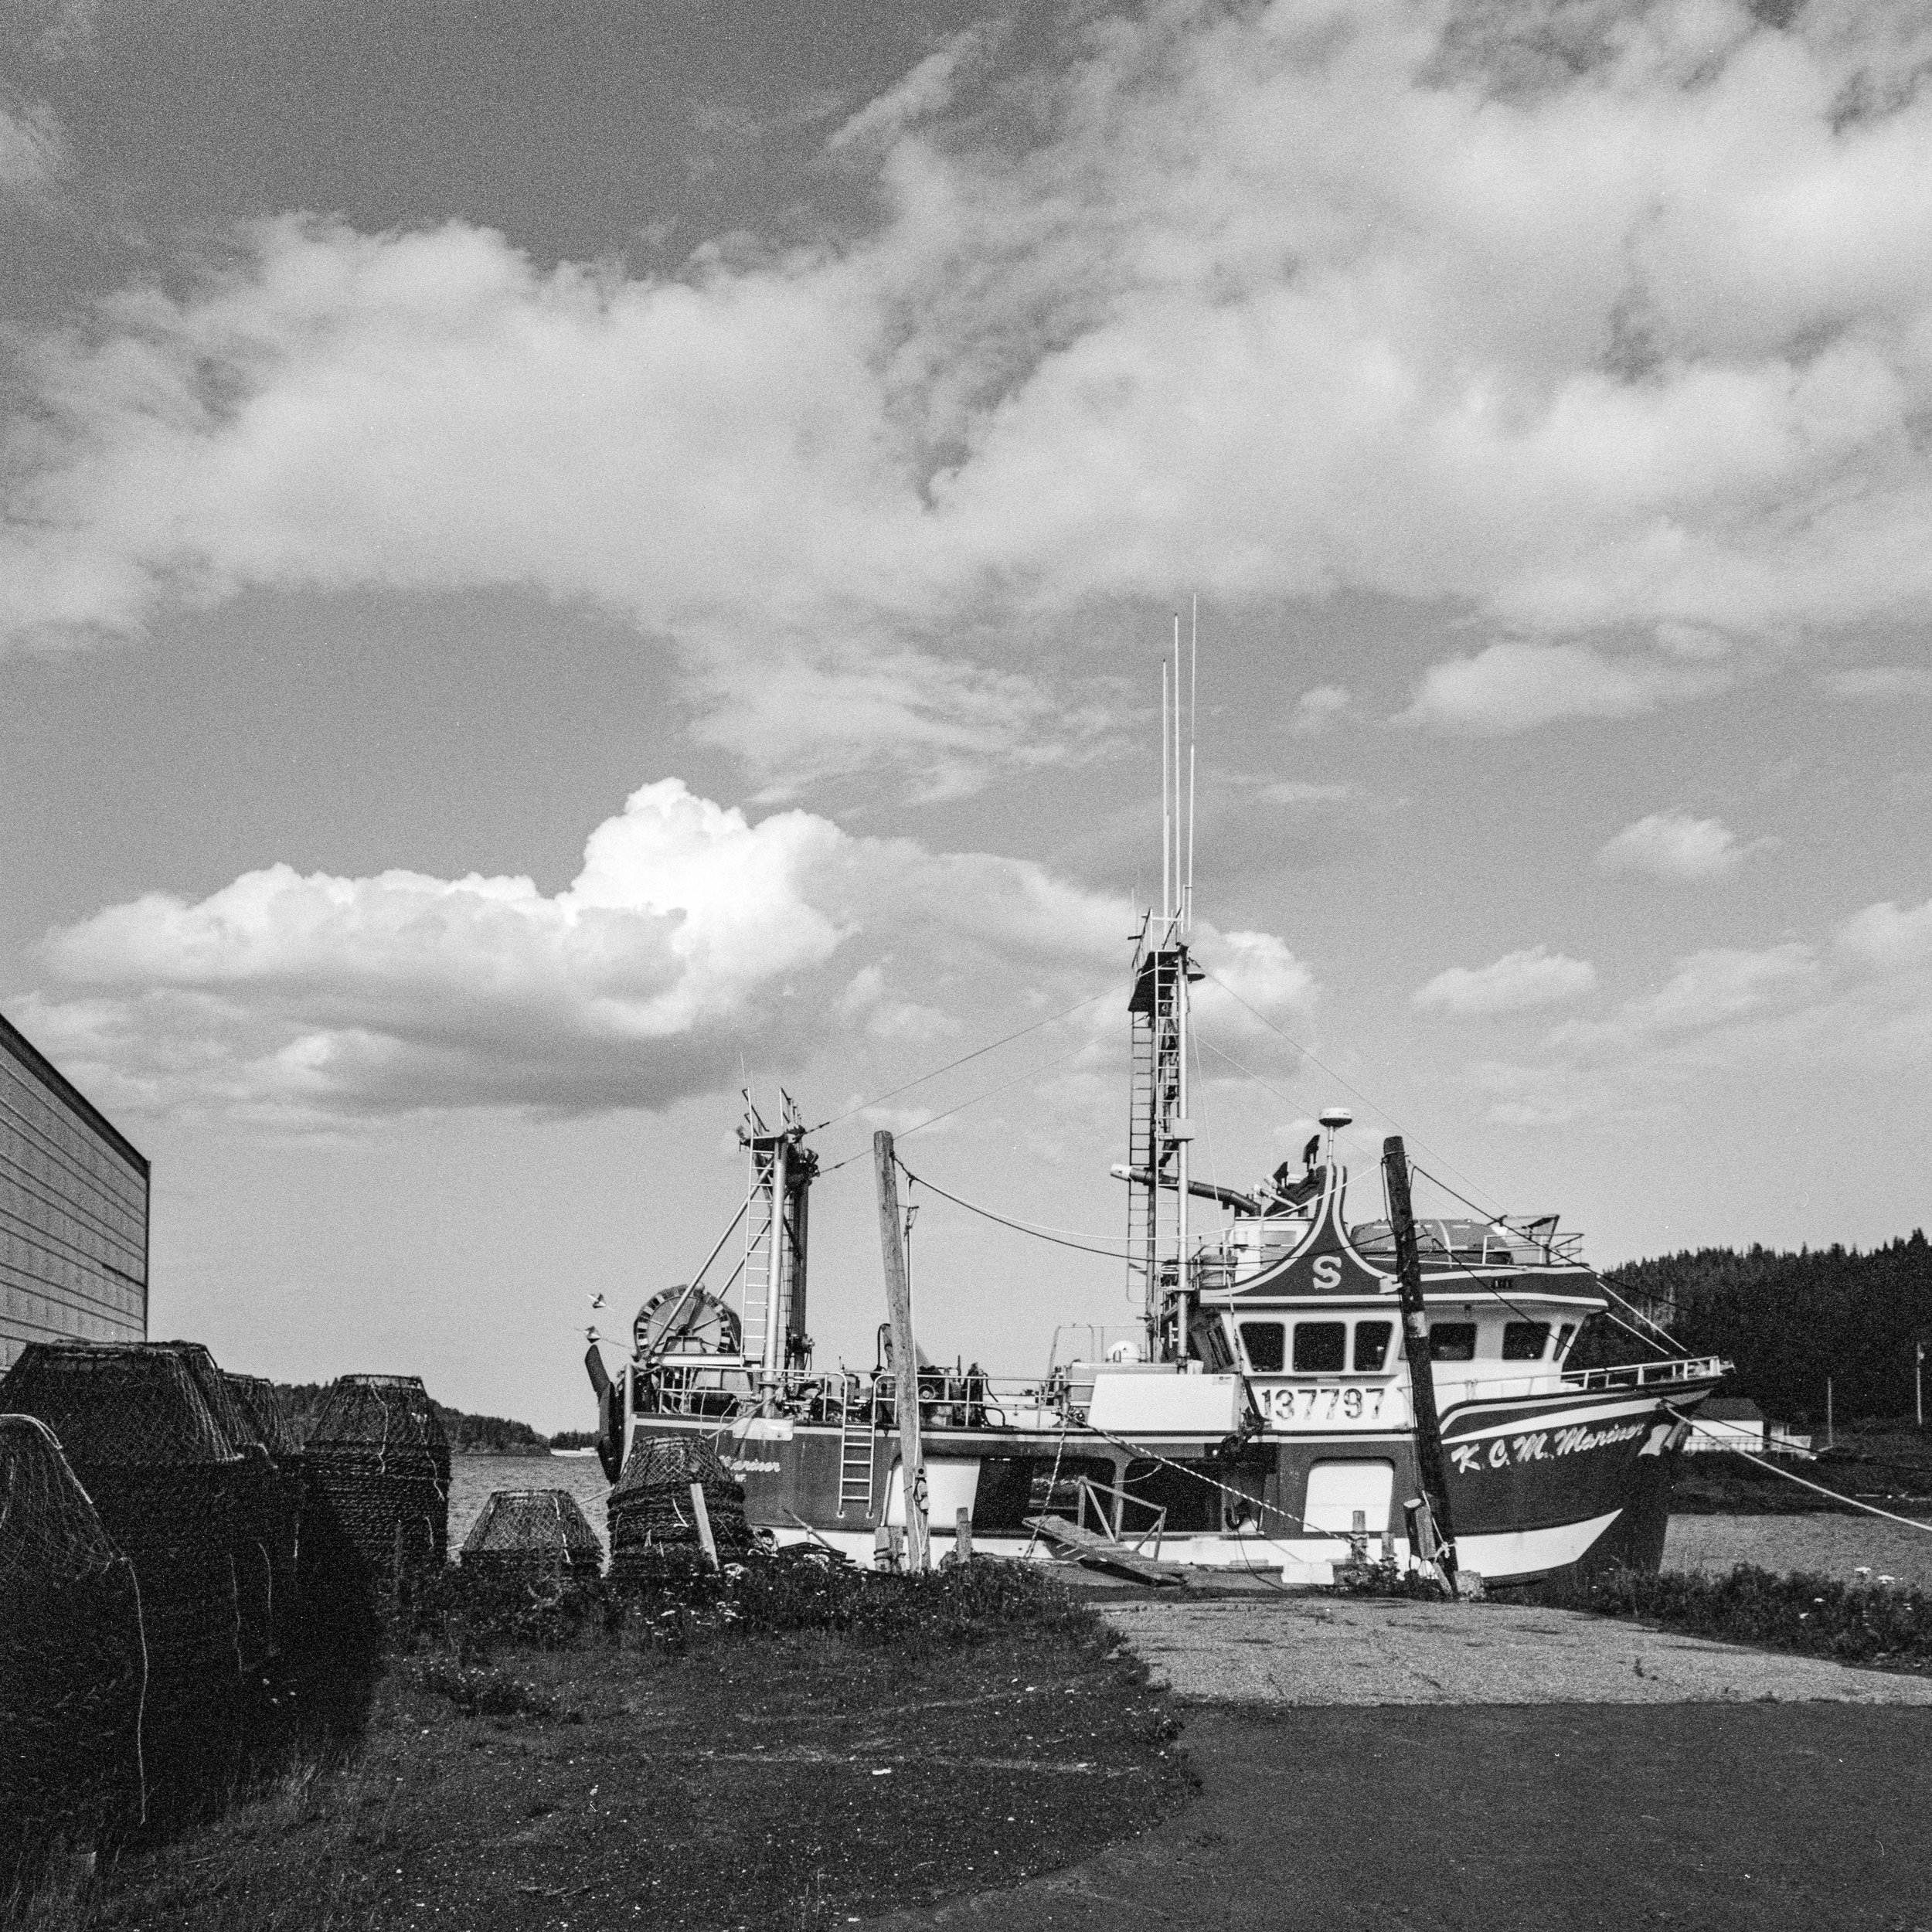 Fishing boat docked in Cobbs Arm, Newfoundland.